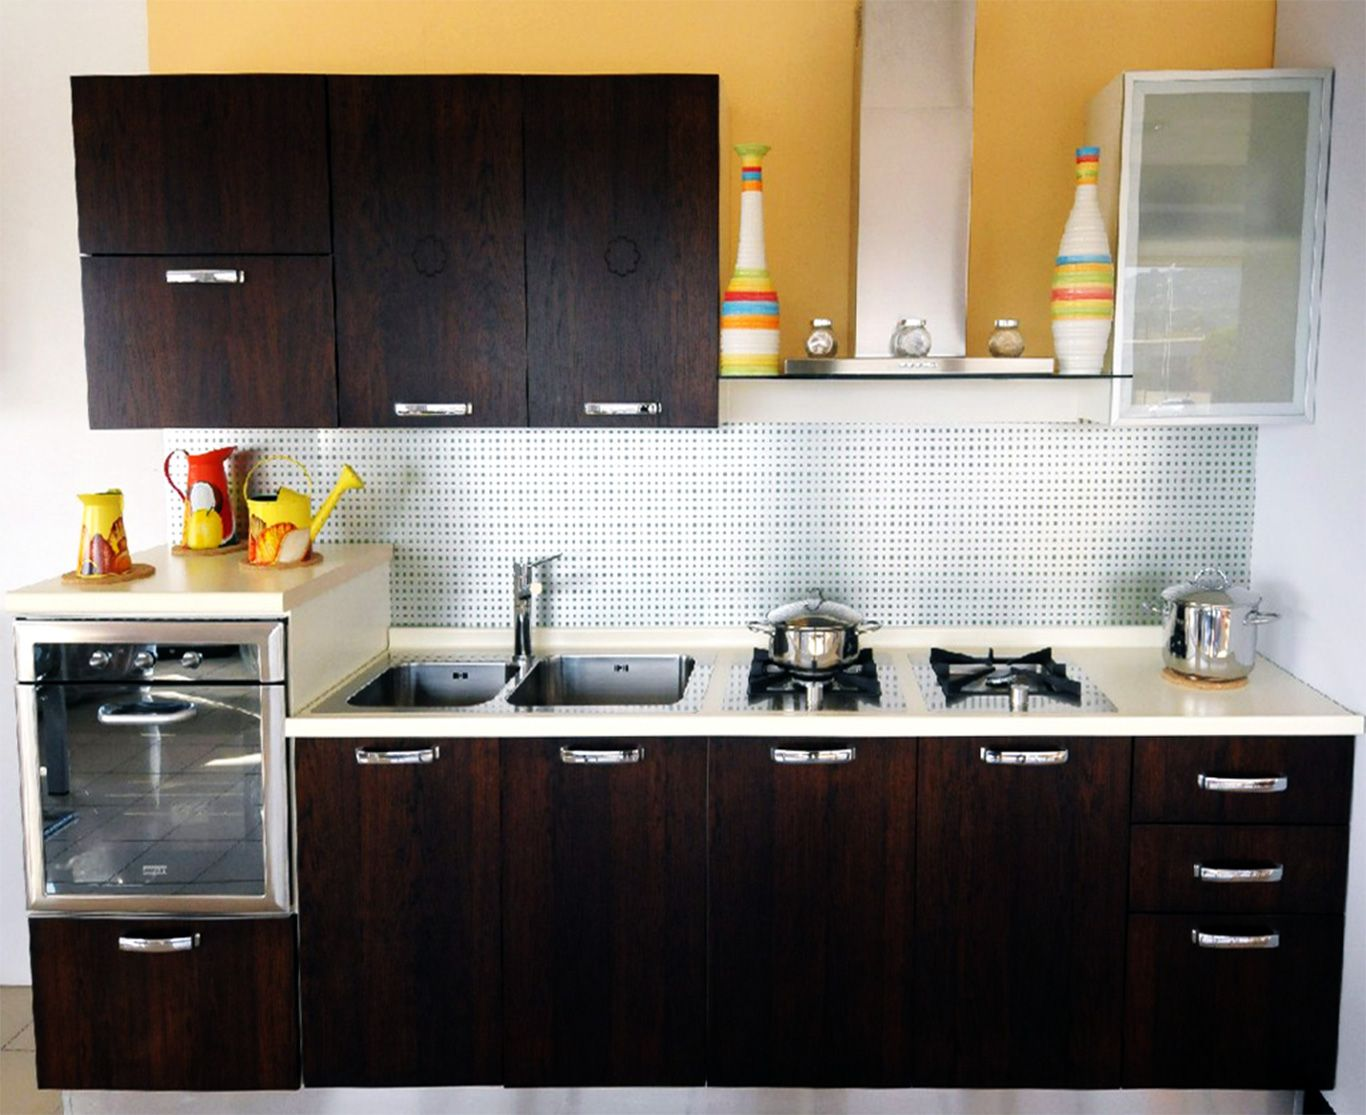 Pune kitchens is the modular kitchen shutters supplier for Latest kitchen units designs